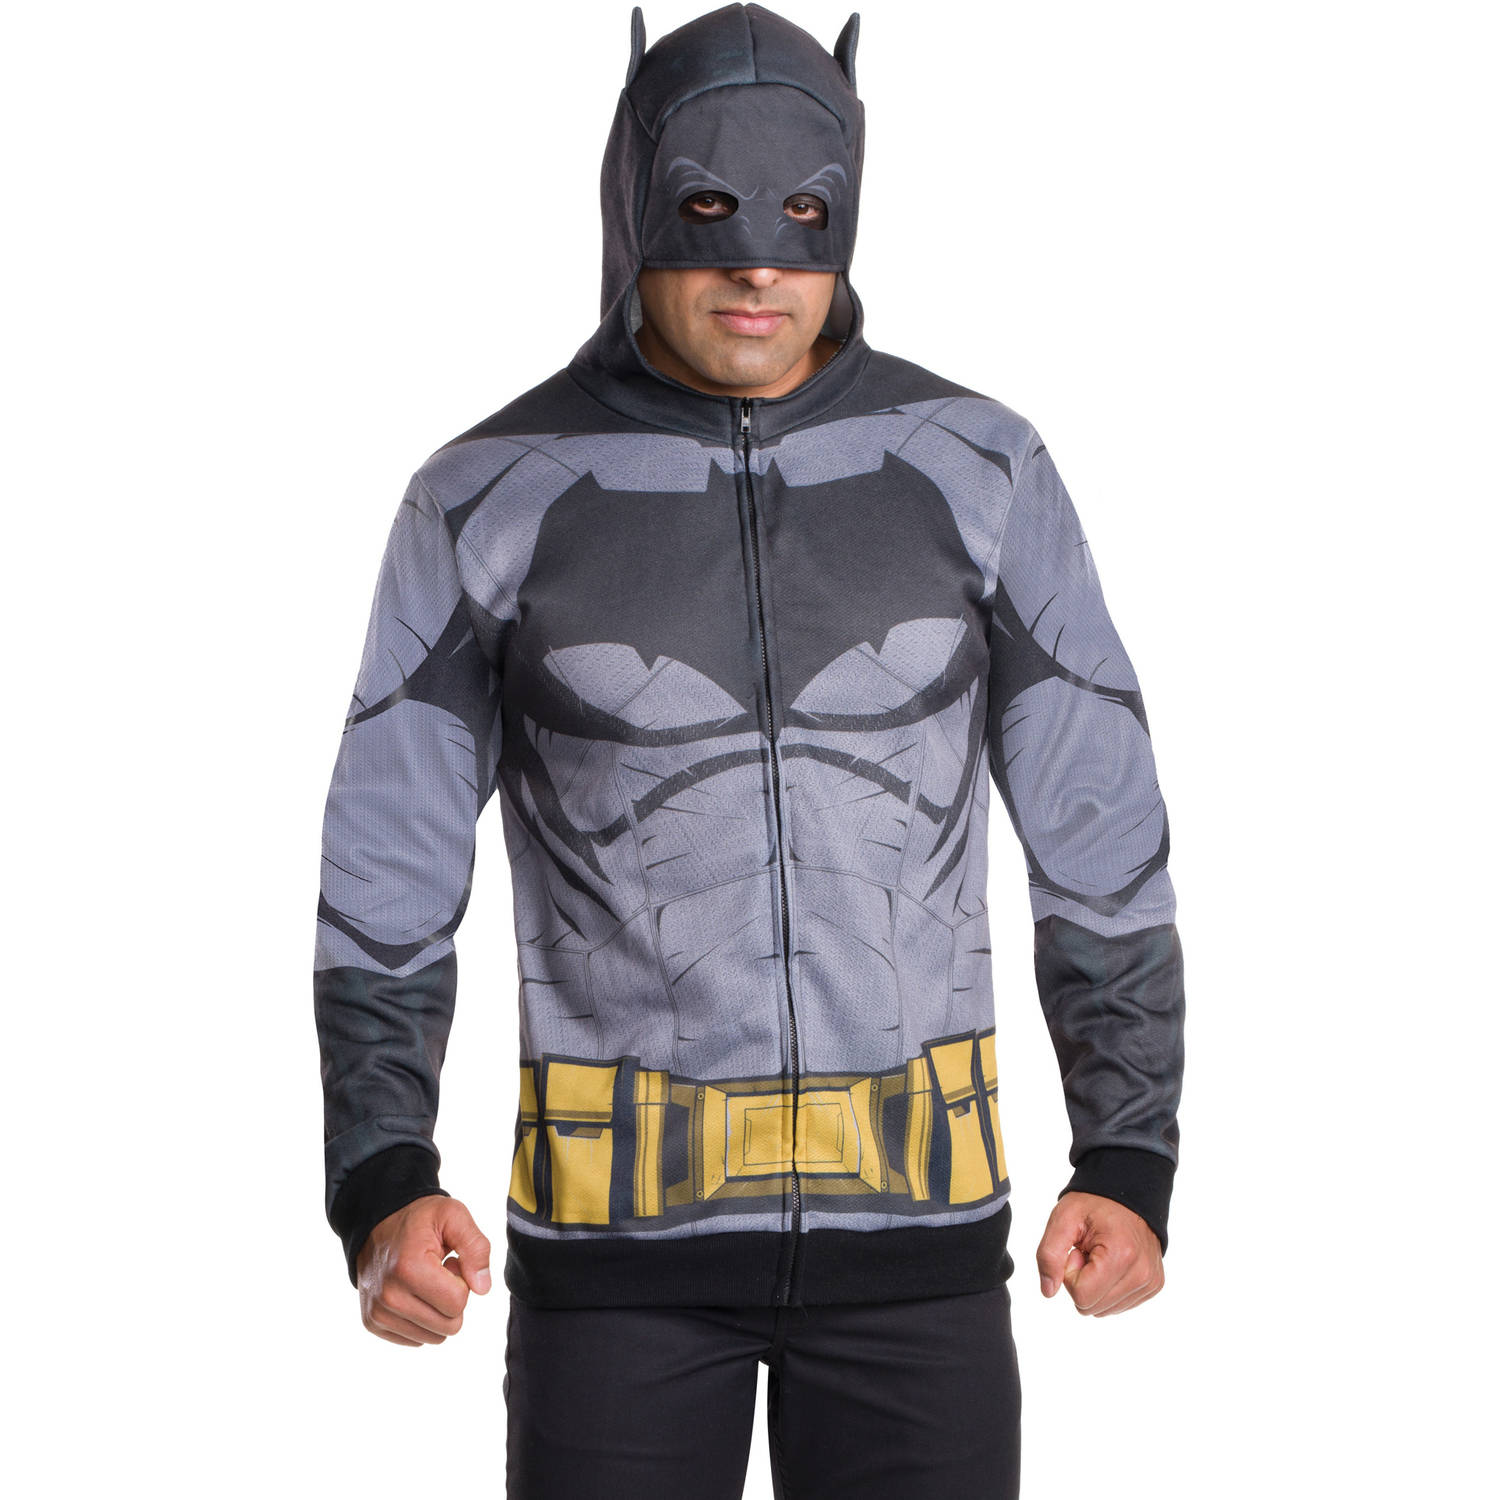 Batman Hoodie Adult Halloween Costume